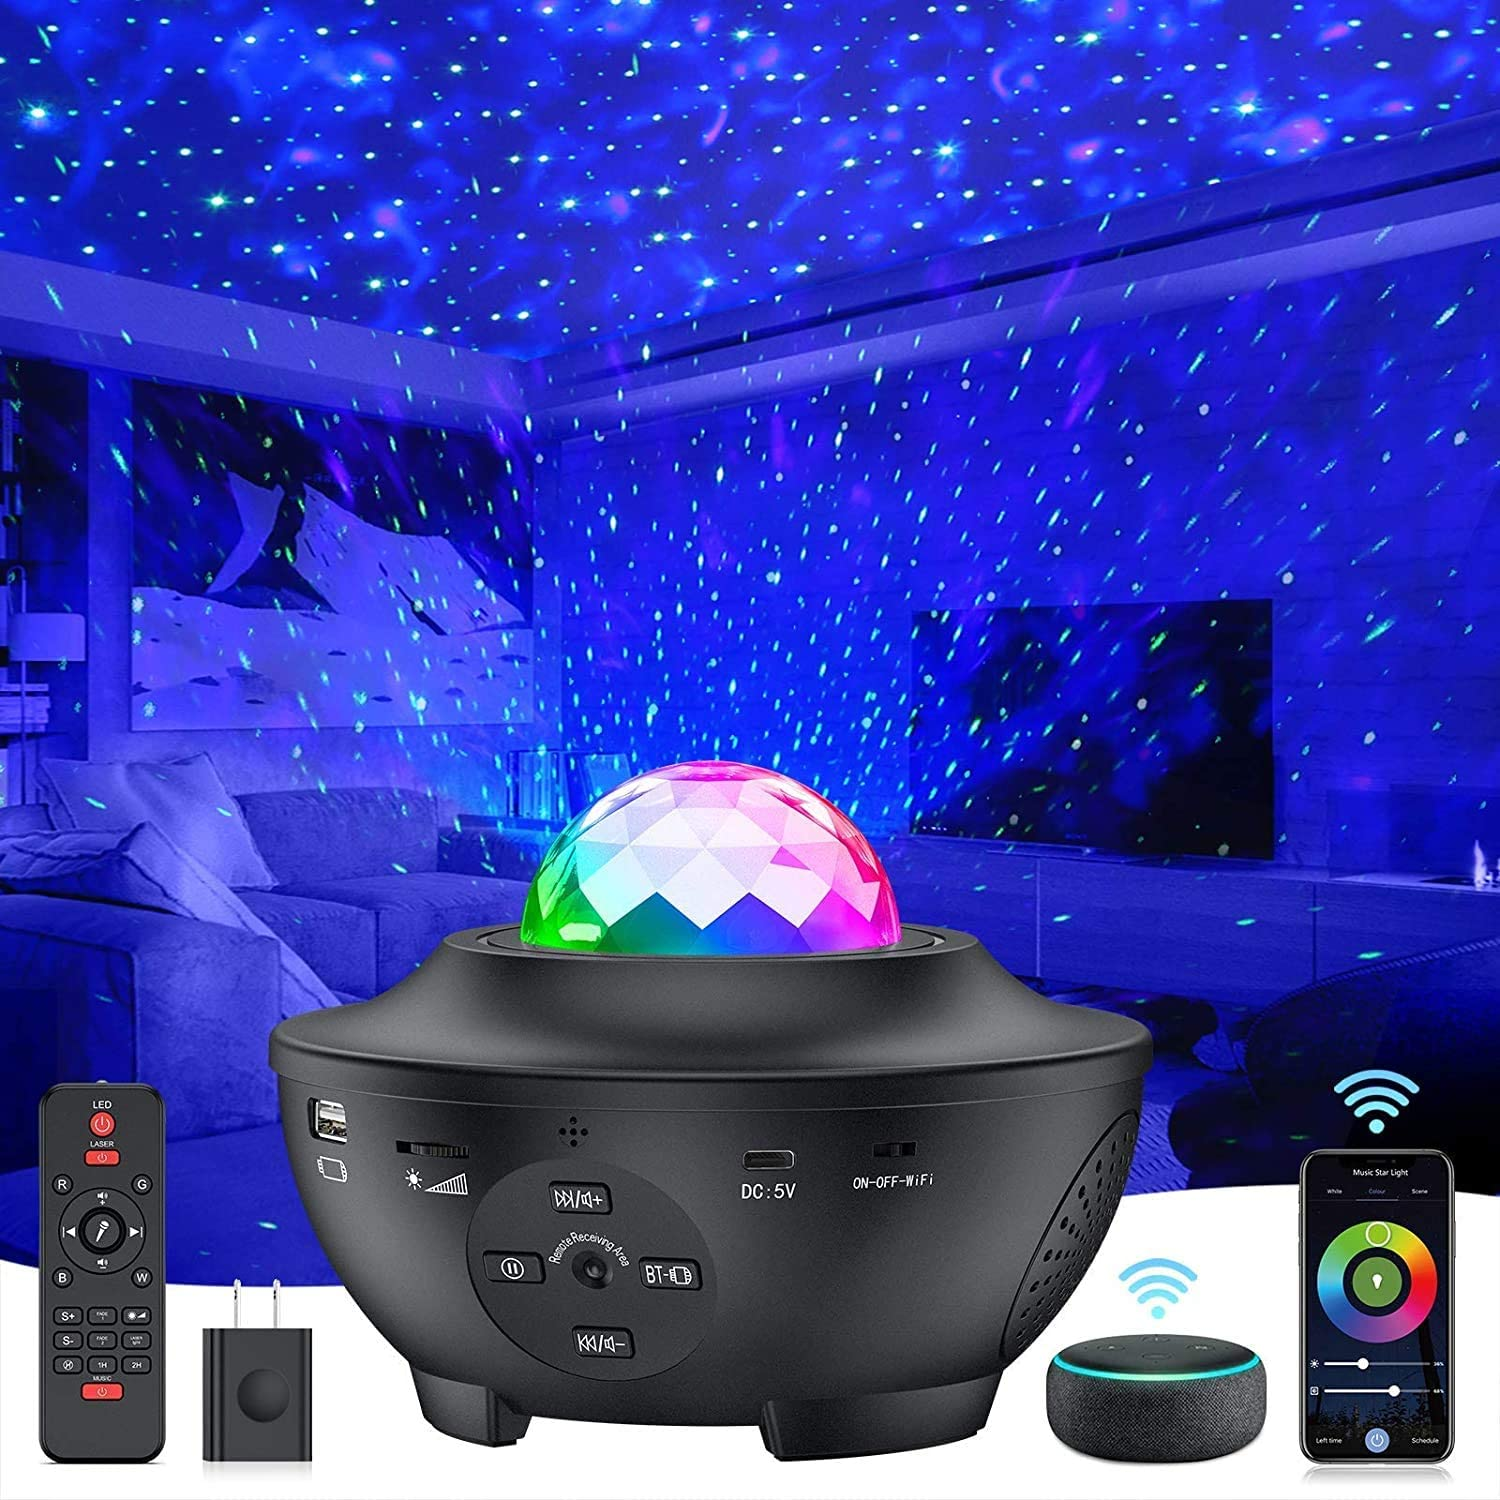 Star Projector 4 in 1 Smart WiFi Galaxy Projector Night Light Work with Alexa & Google Assistant, Ocean Sky Star Light Projector with Smart Music Voice Remote Control for Baby Kids Bedroom Game Room